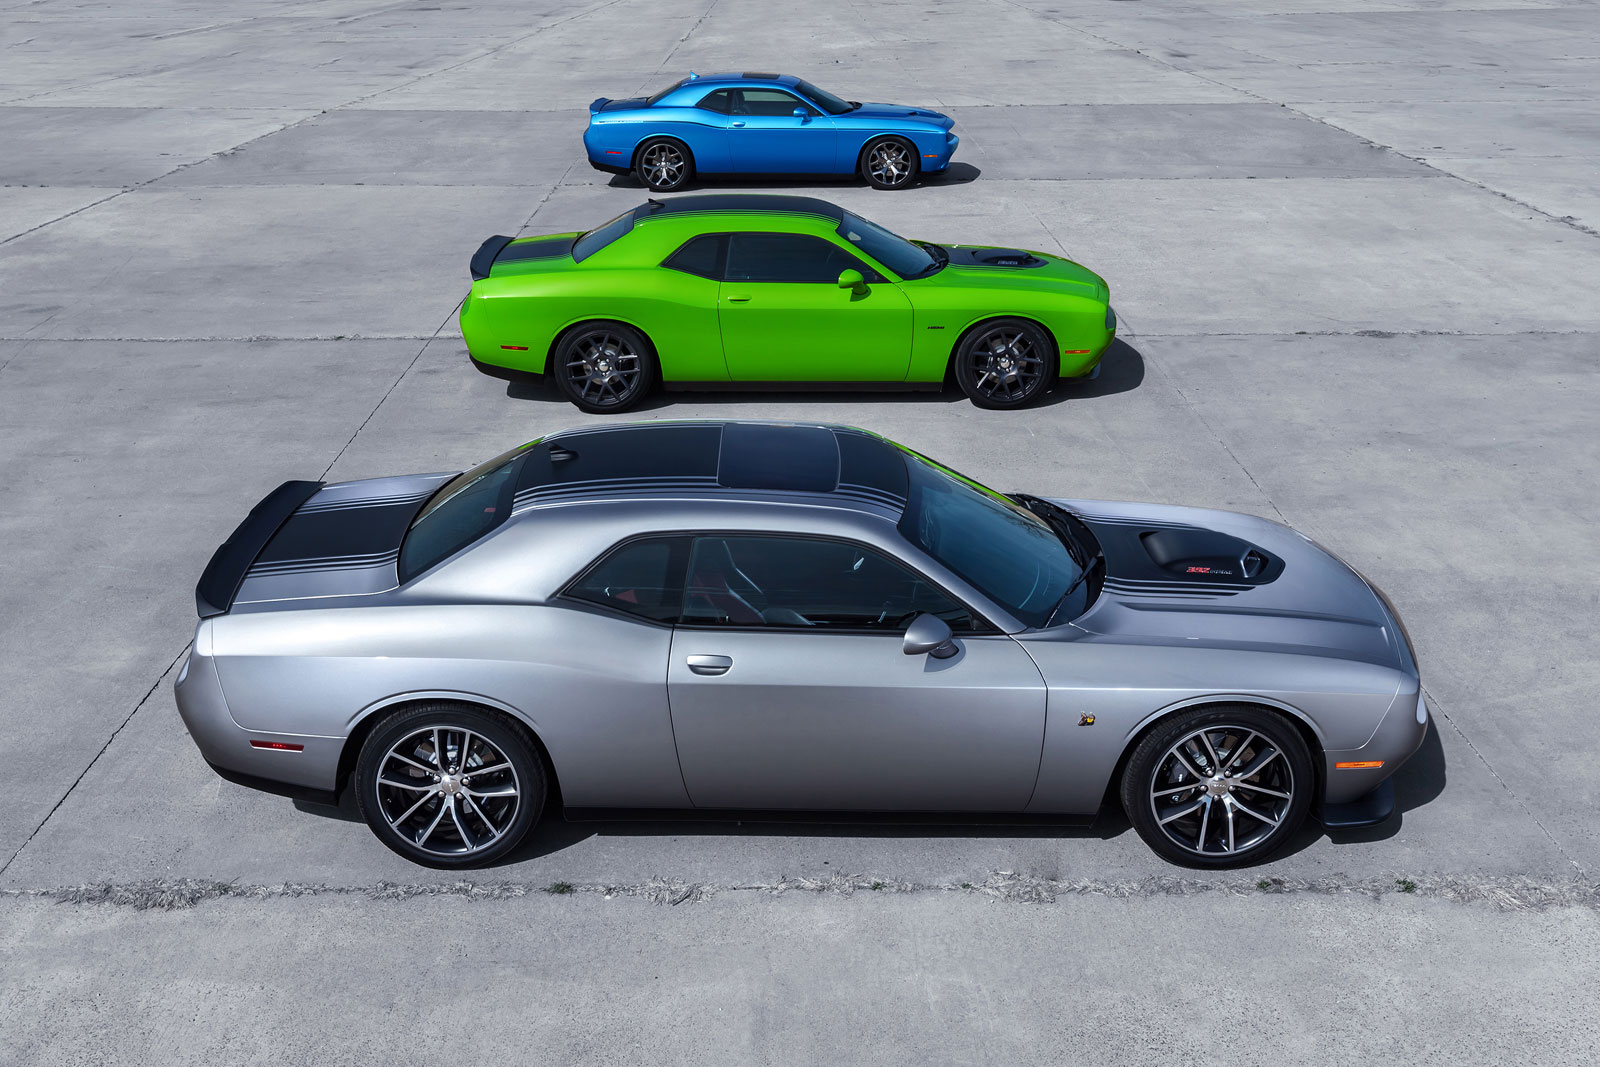 dodge 2015 challenger car body design. Black Bedroom Furniture Sets. Home Design Ideas